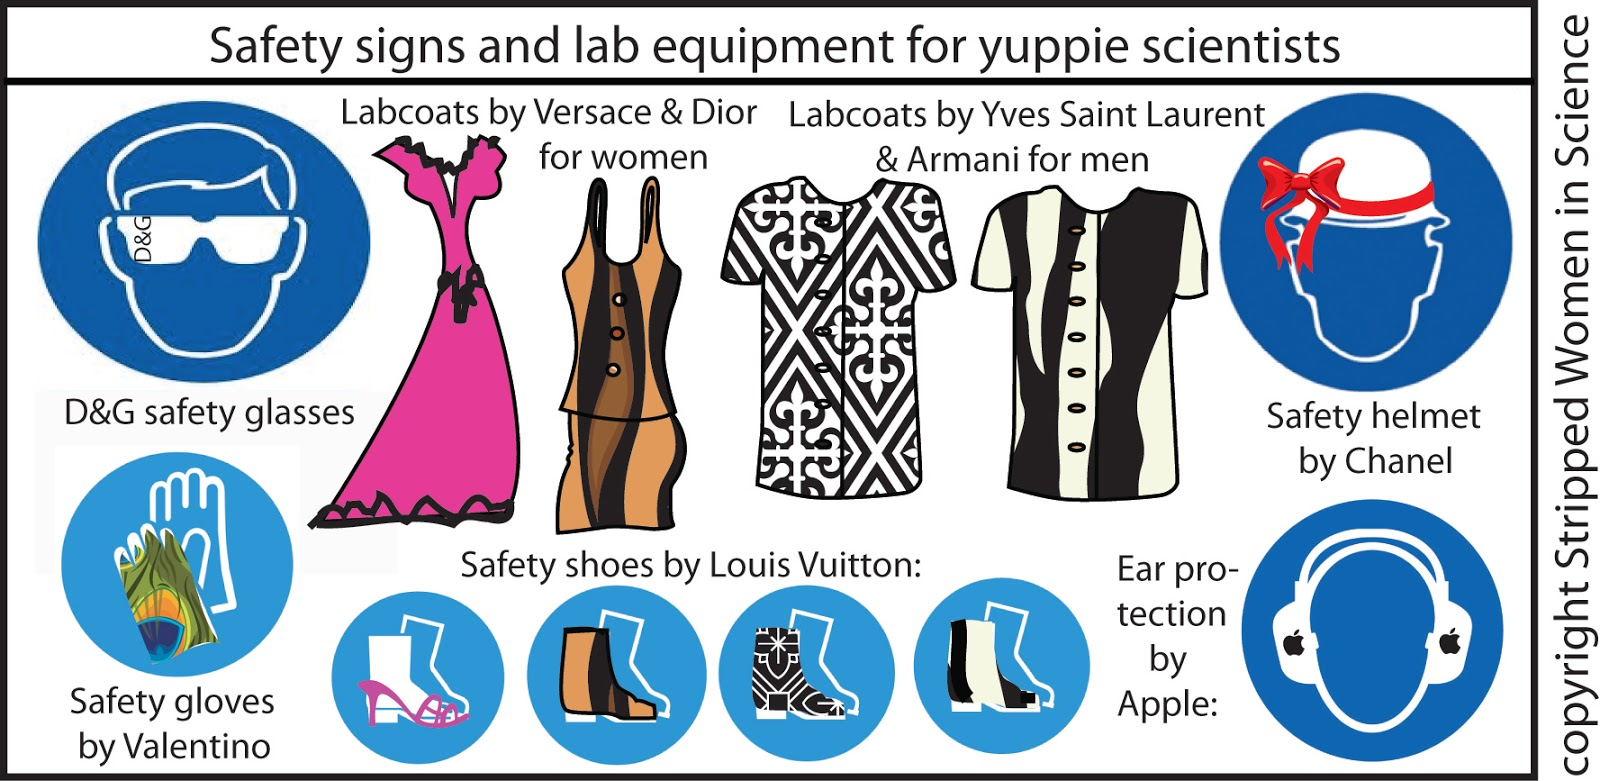 Science clipart safety equipment Safety clipart Clipart Lab Safety